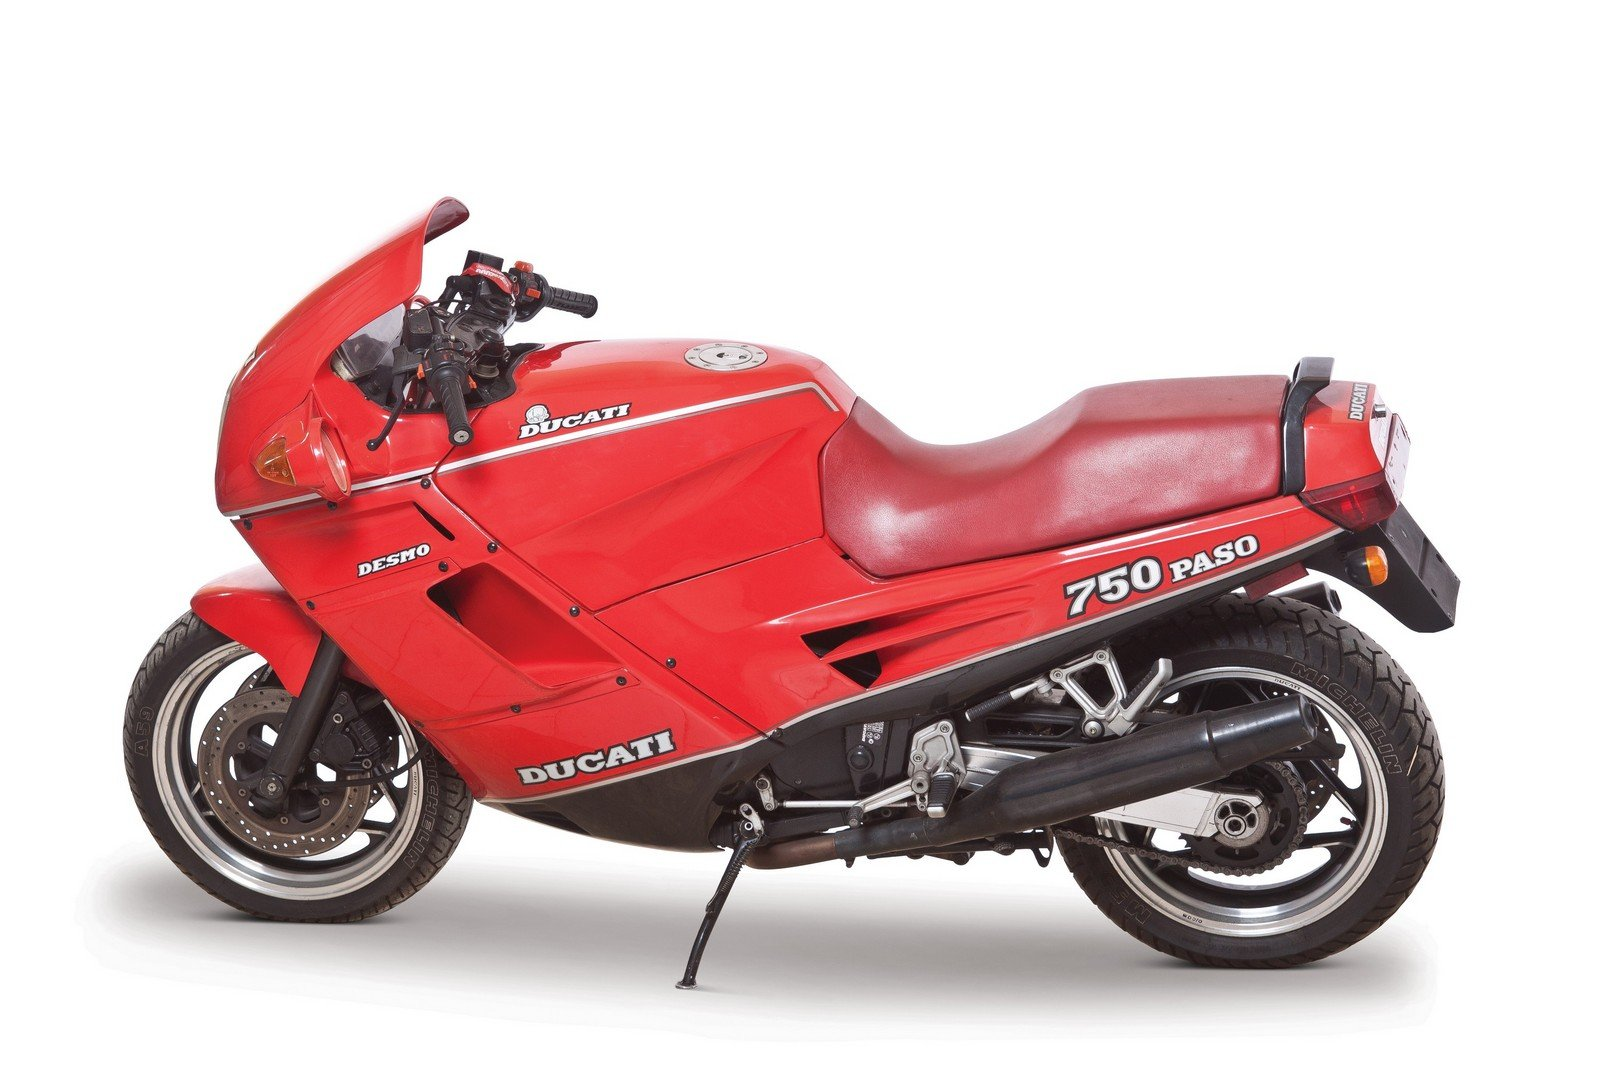 1990 ducati 750 paso desmo review top speed. Black Bedroom Furniture Sets. Home Design Ideas